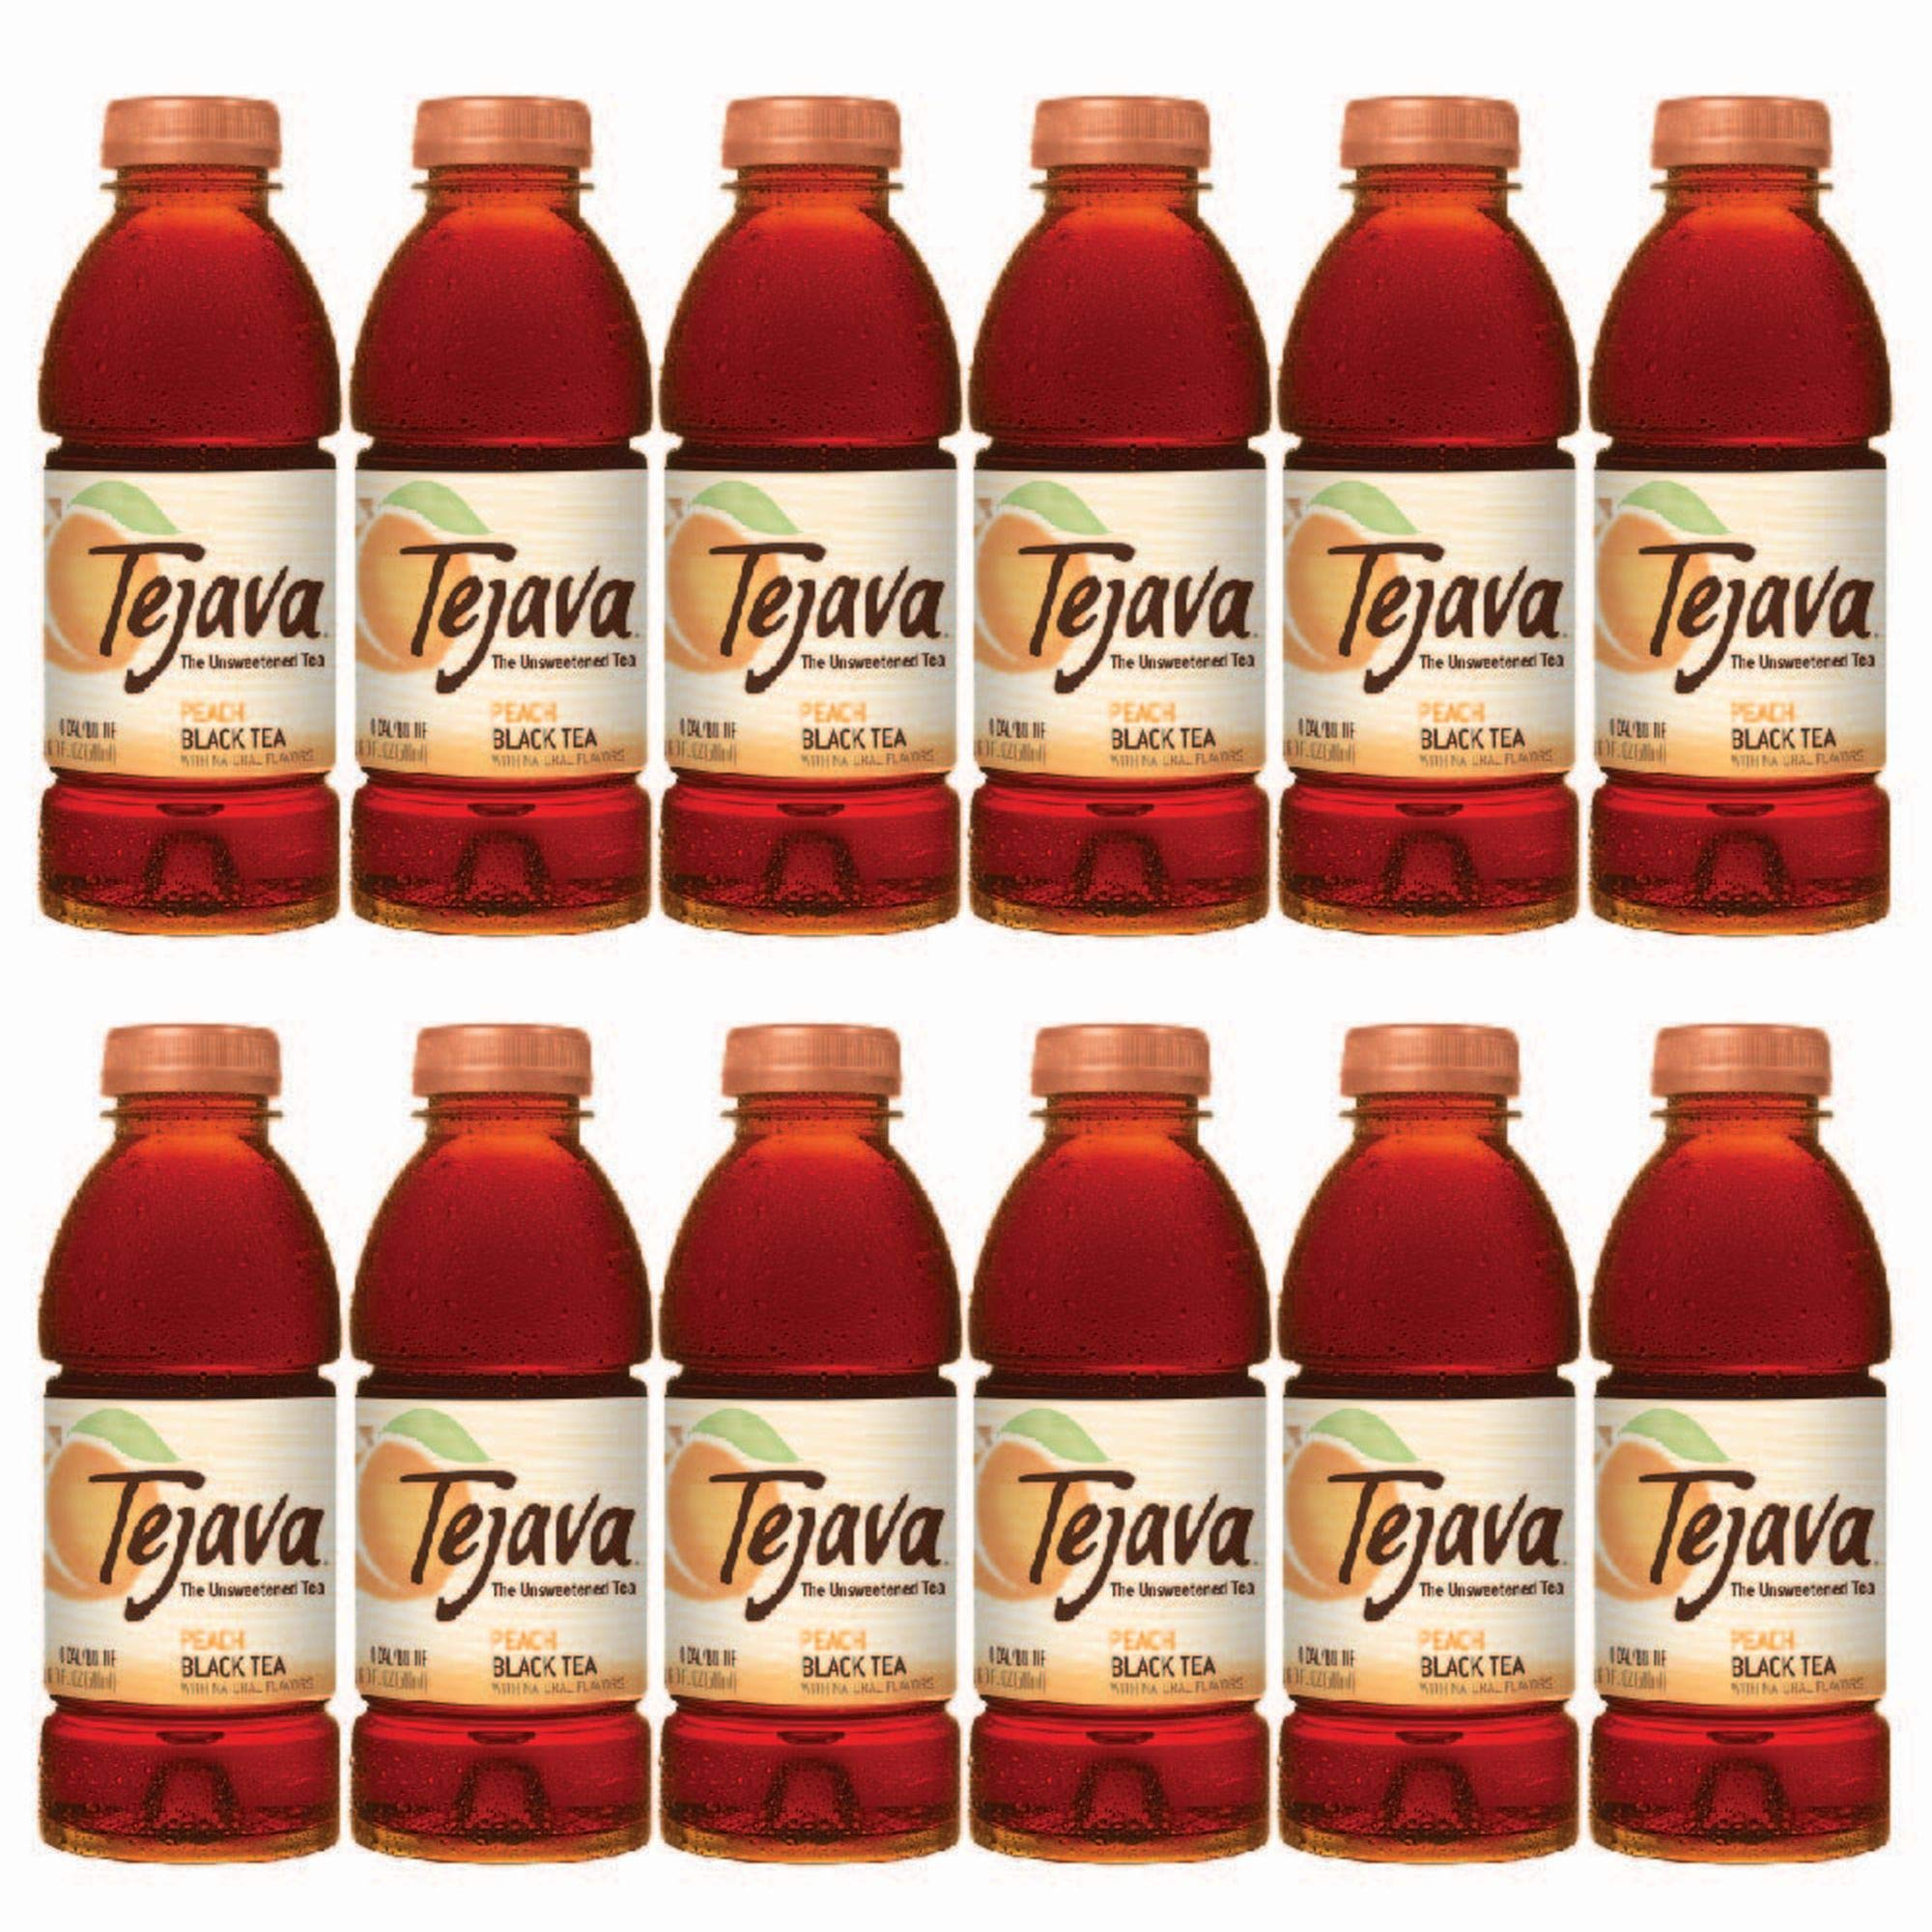 Tejava Unsweetened Iced Tea, Peach, 16.9oz PET Bottles, Award Winning, Non-GMO-Verified, from Rainforest Alliance-Certified farms (12 Pack)